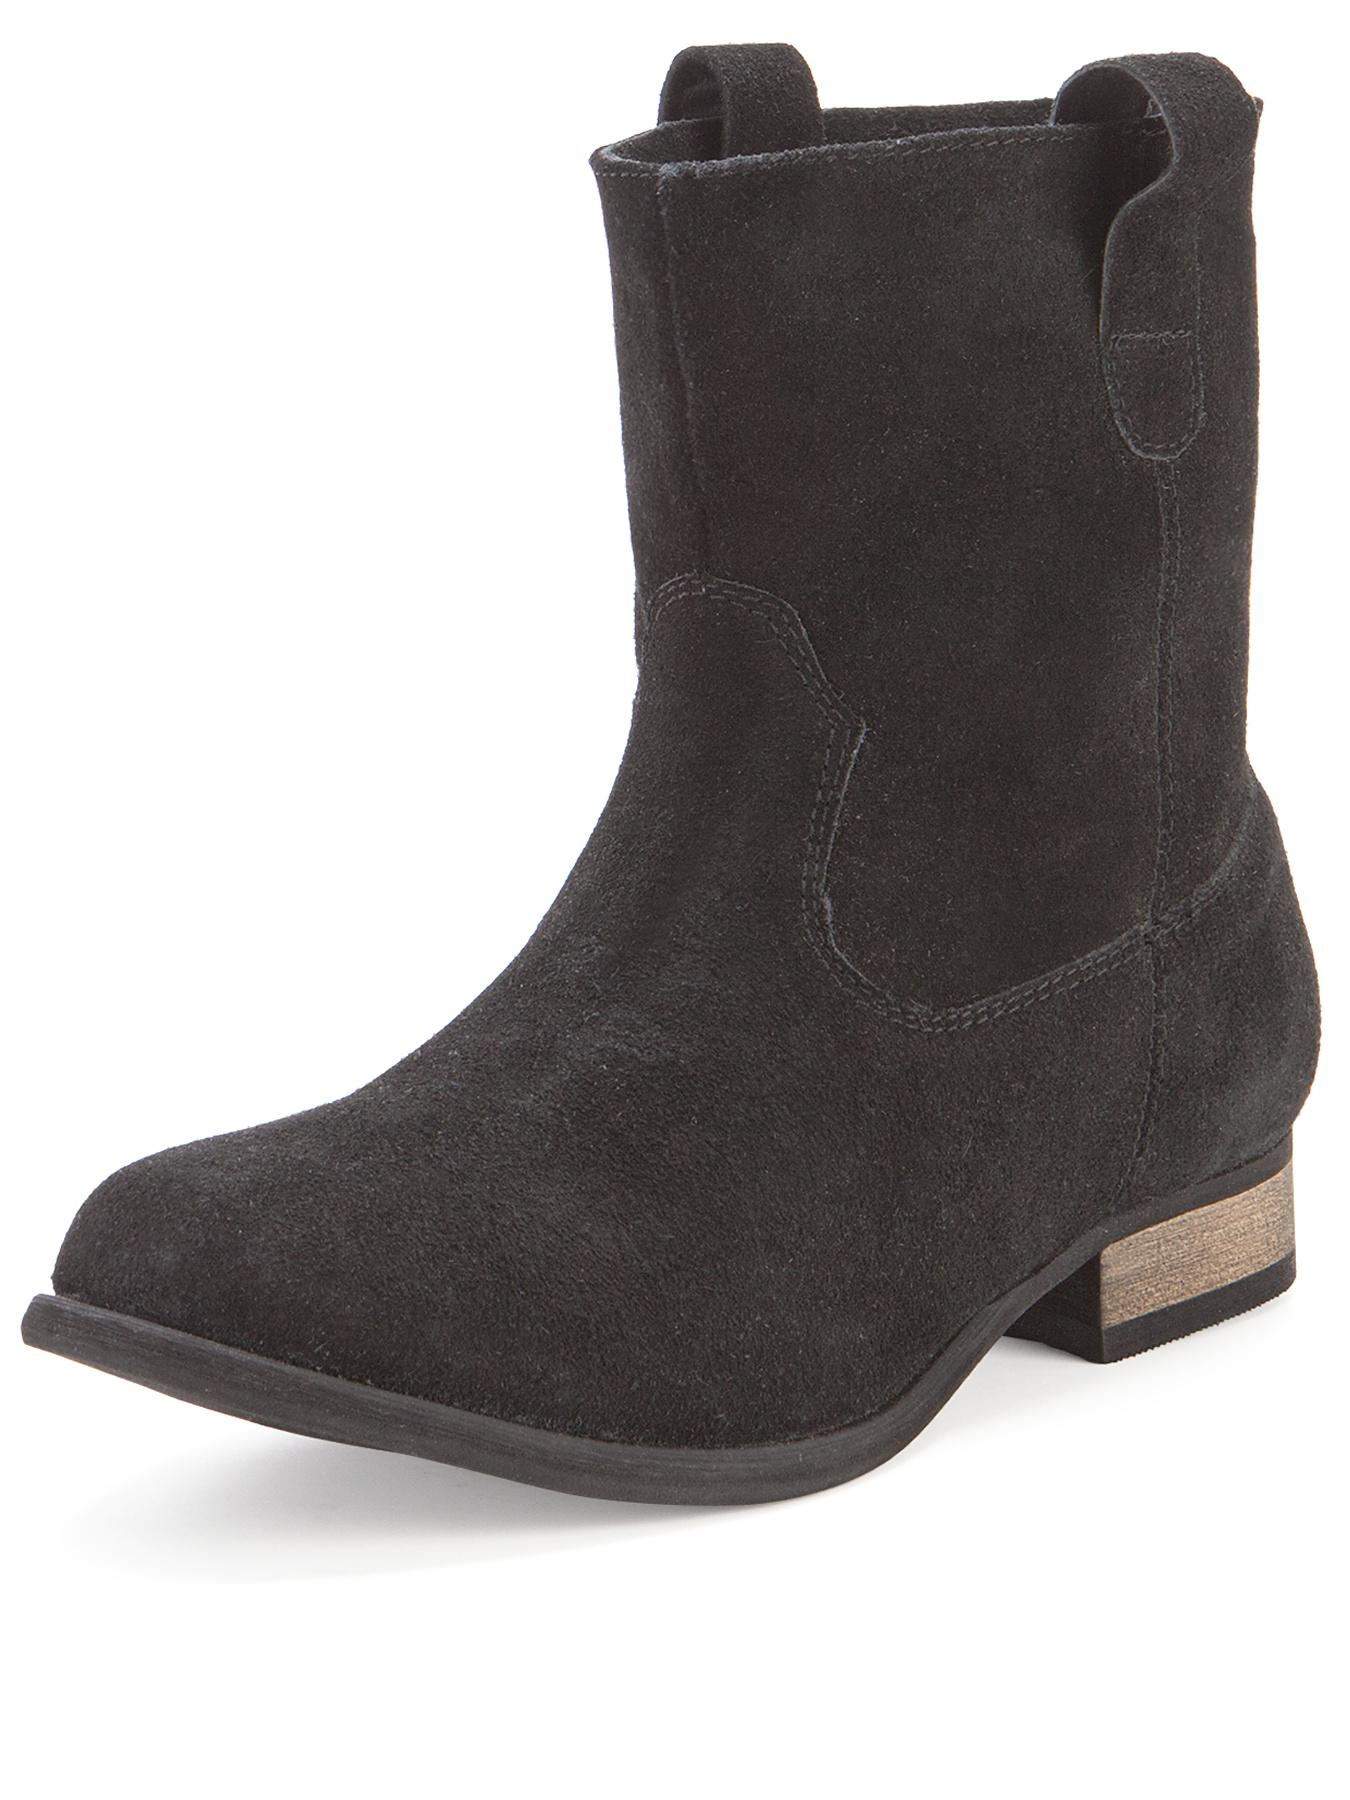 Beatrice Suede Slouch Ankle Boots  Black Black